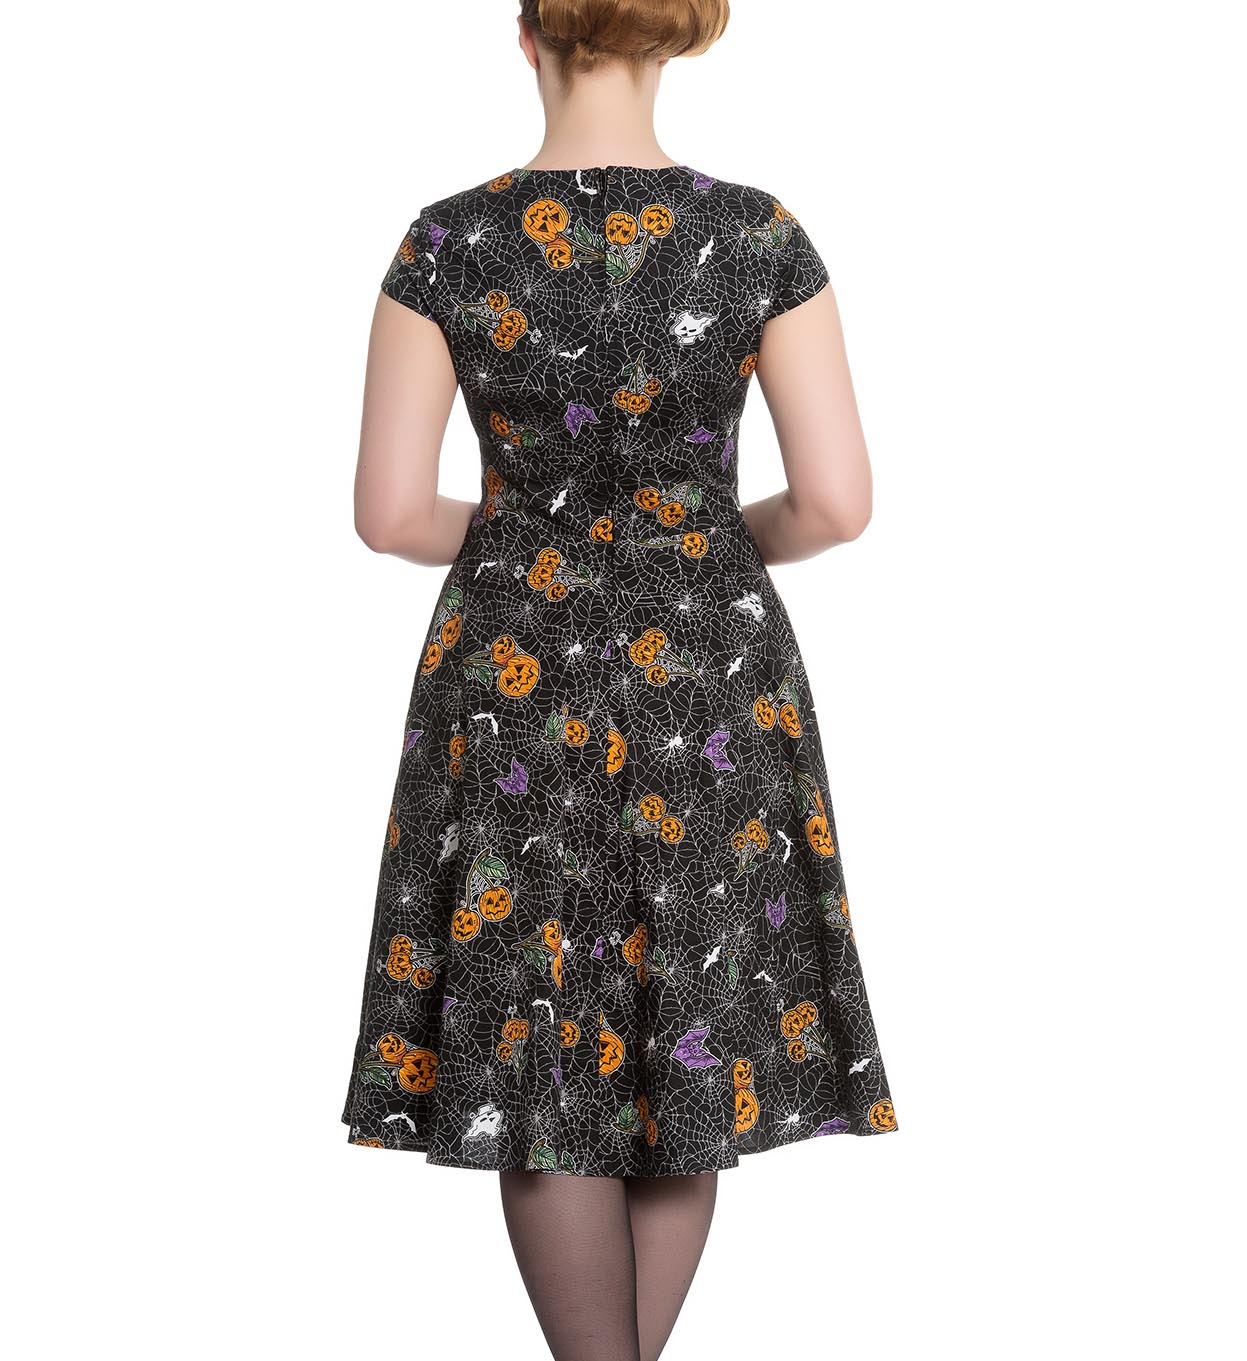 Hell-Bunny-Black-Pinup-50s-Goth-Webs-Dress-HARLOW-Halloween-All-Sizes thumbnail 5